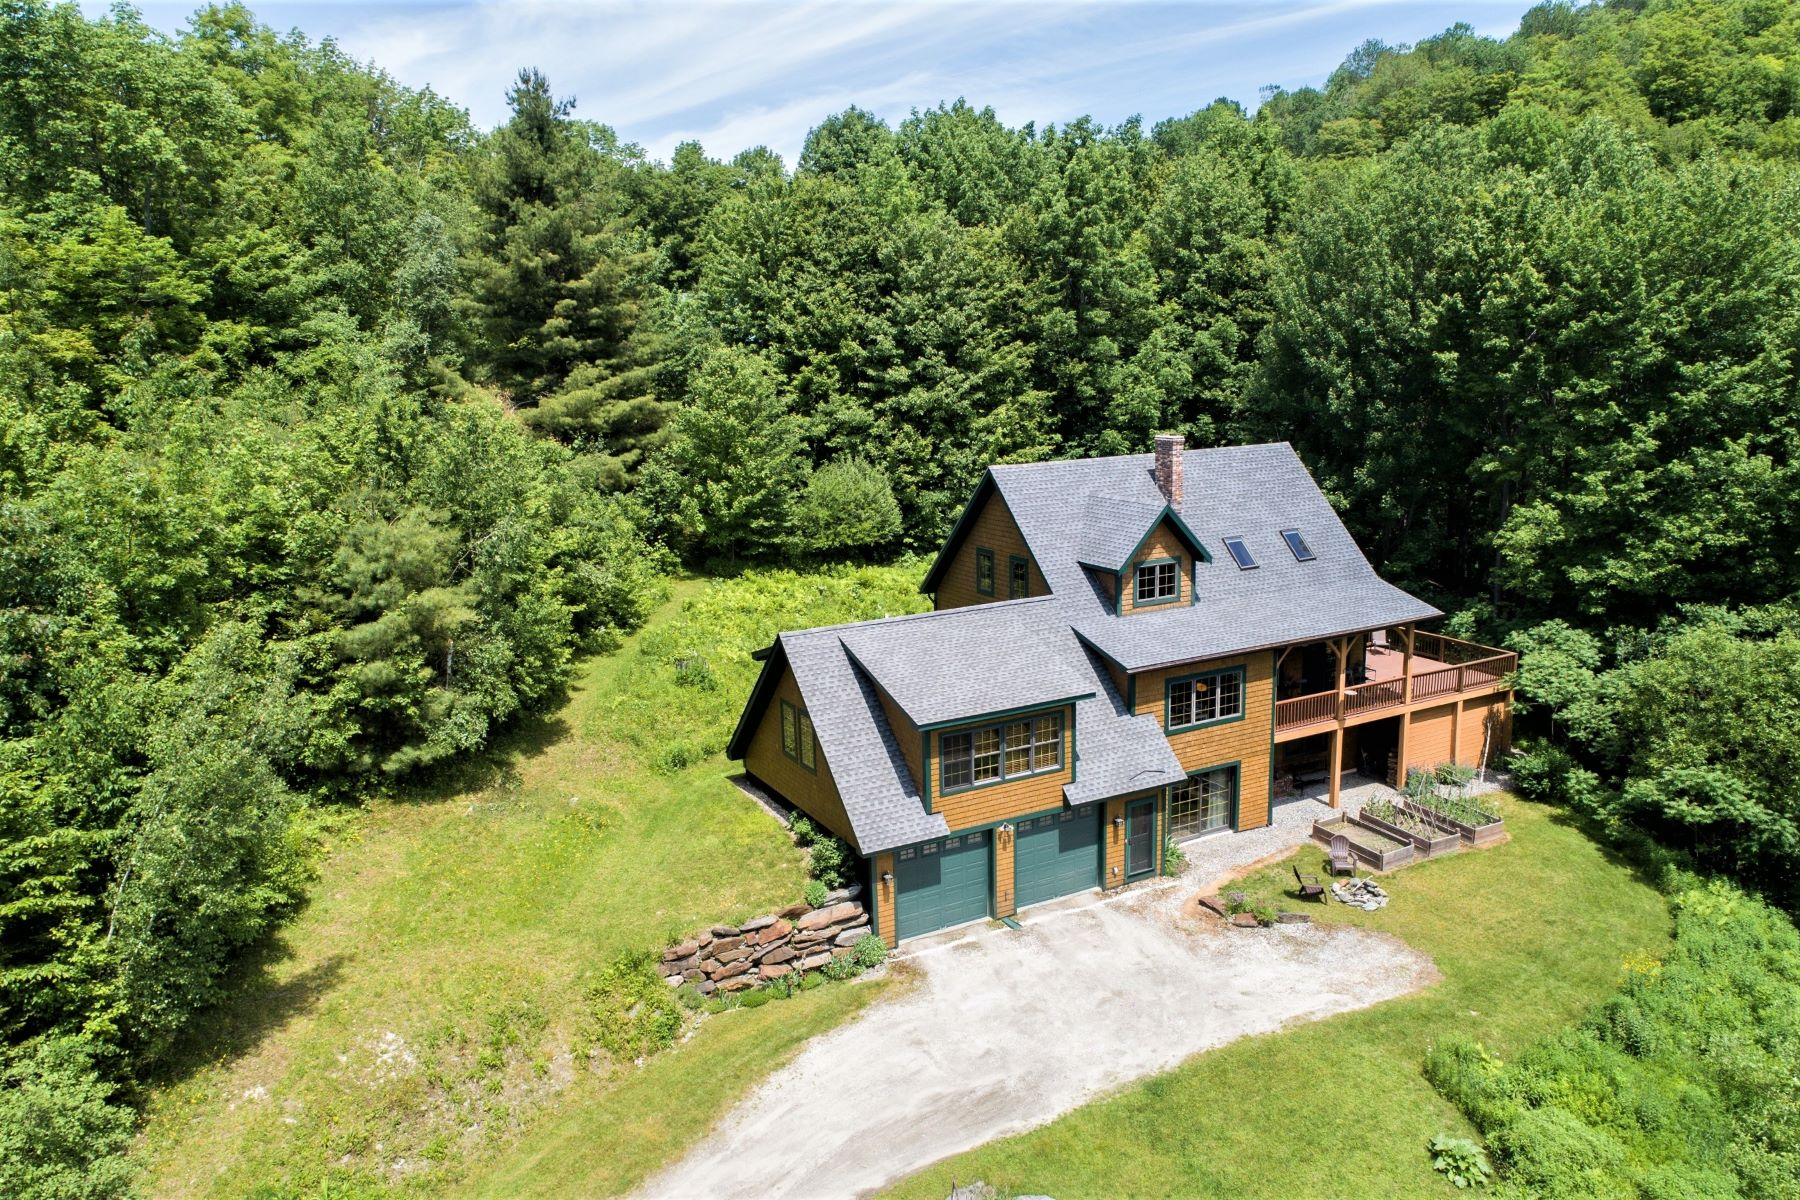 Single Family Homes for Sale at Three Bedroom Contemporary in Bethel 643 Campbell Road Bethel, Vermont 05032 United States